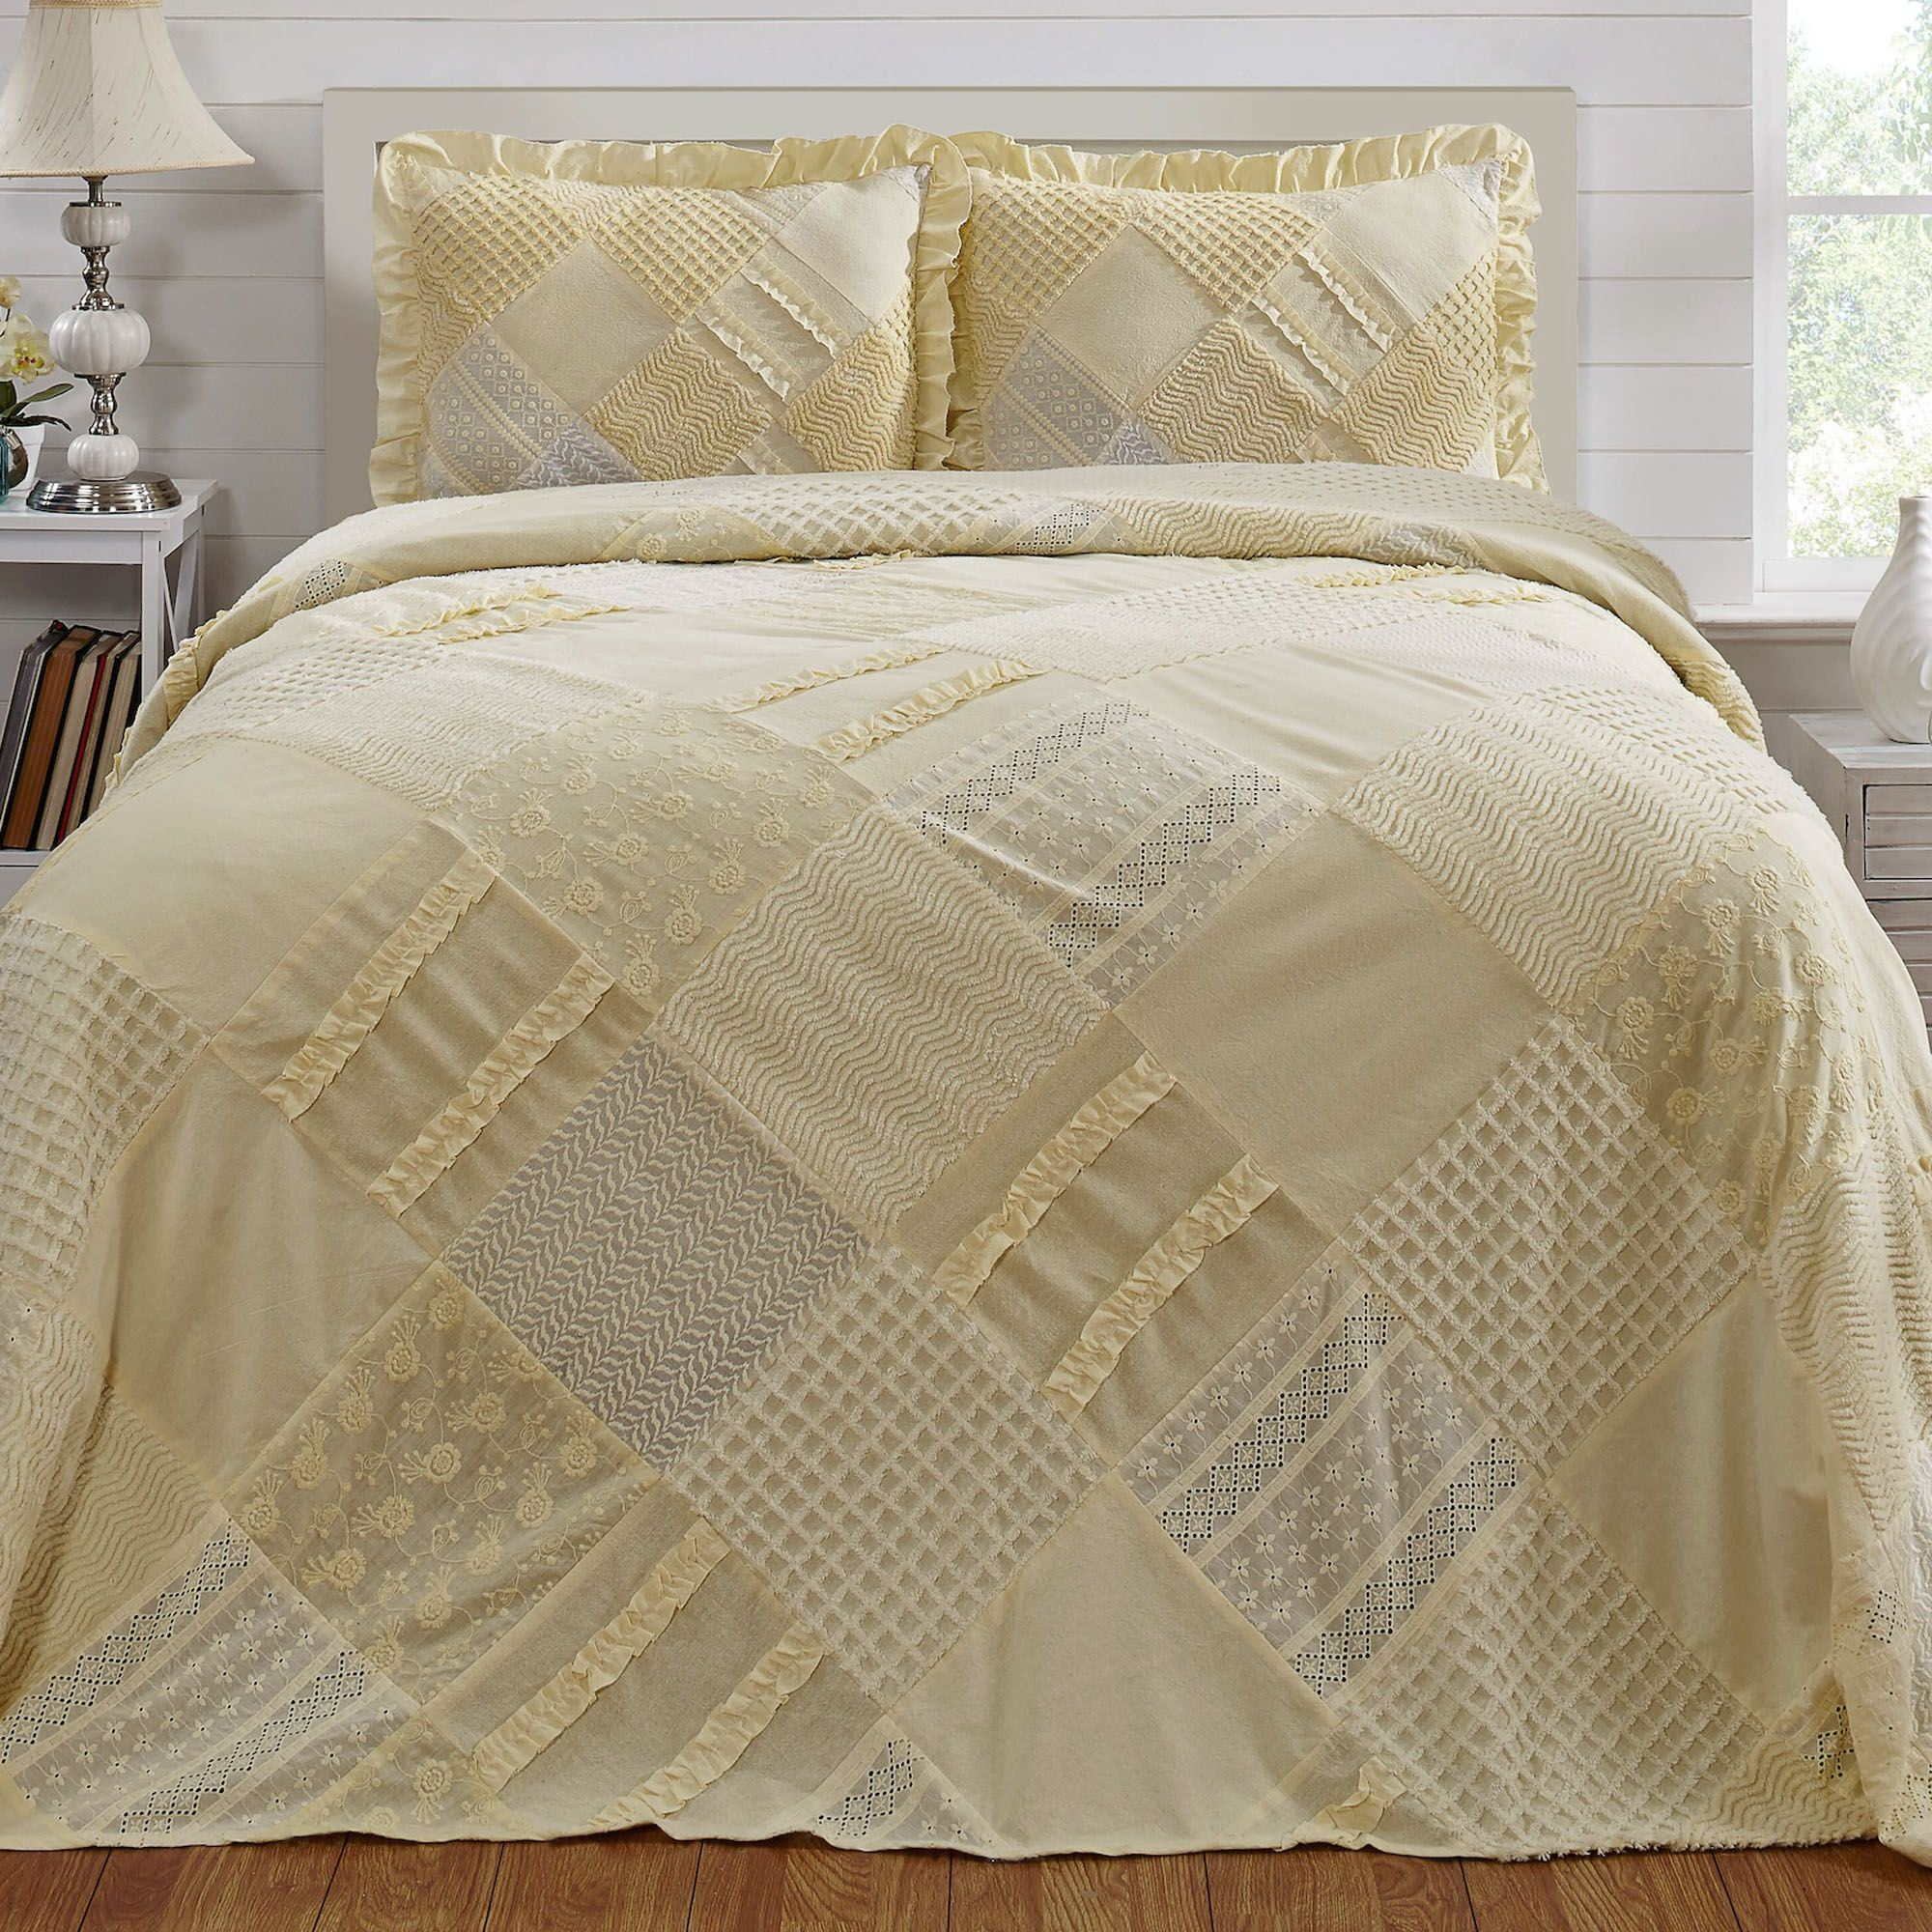 Patchwork lightweight chenille bedspread bedding for Chenille bedspreads